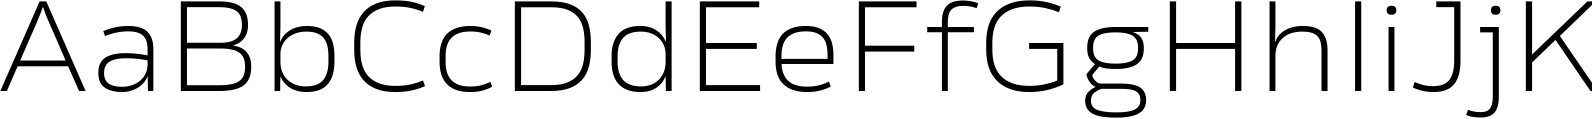 Rleud Extended Extra Light Font